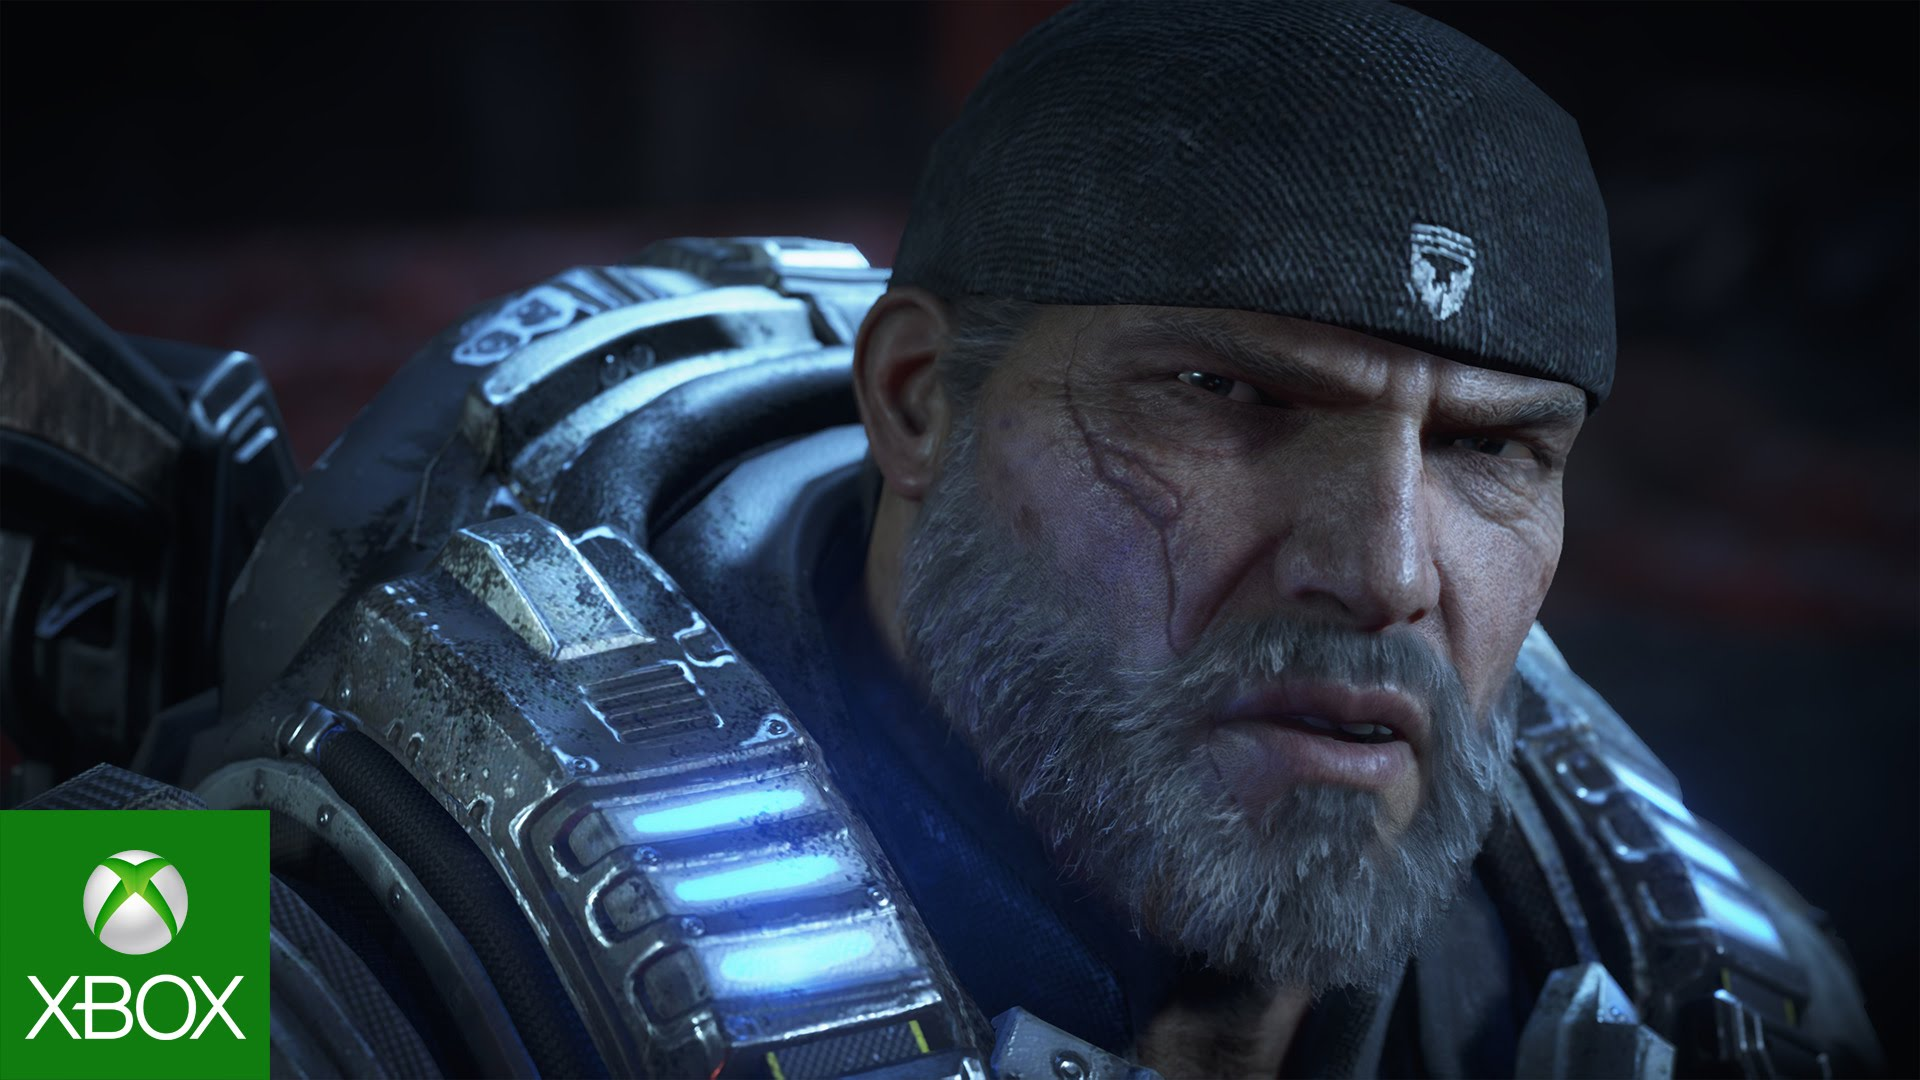 watch the new gears of war 4 lau - Watch The New Gears Of War 4 Launch Trailer